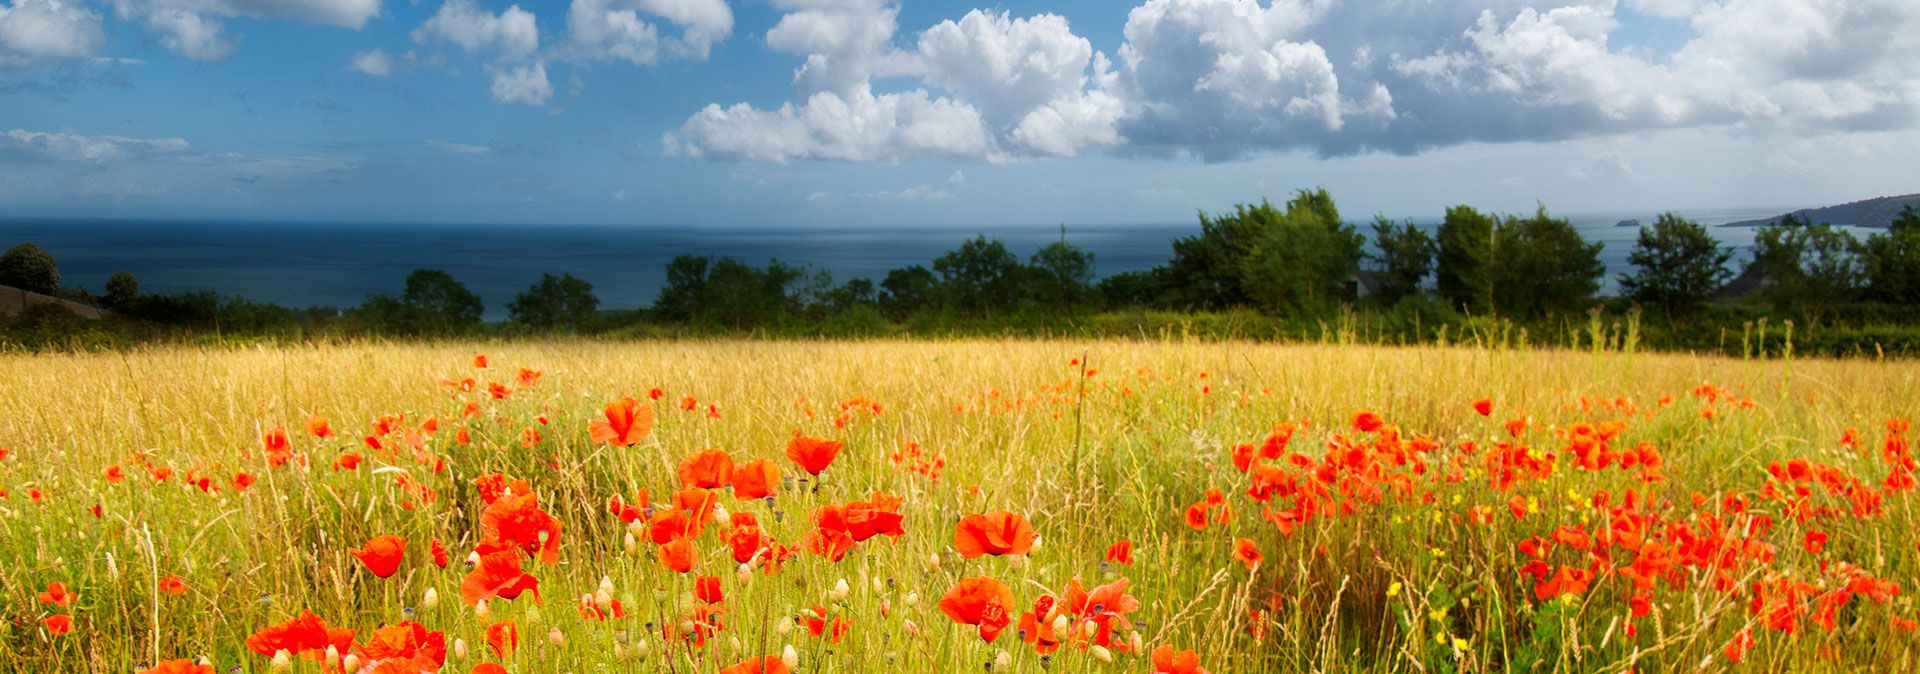 Devon in Bloom, Field of Poppies, Seaviews